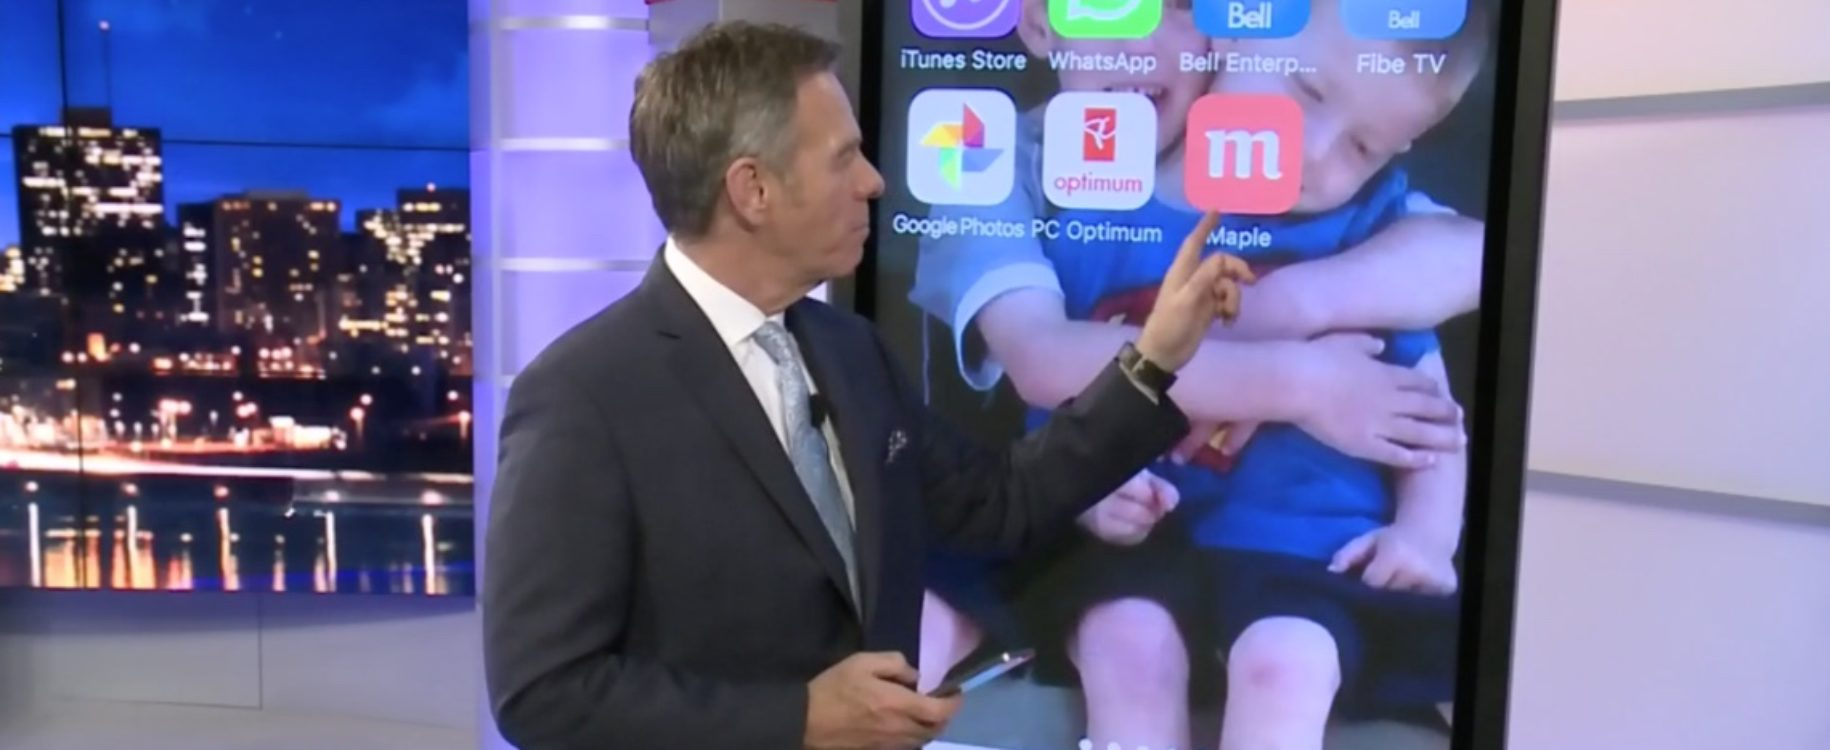 Doctor on call: There's an app for that!